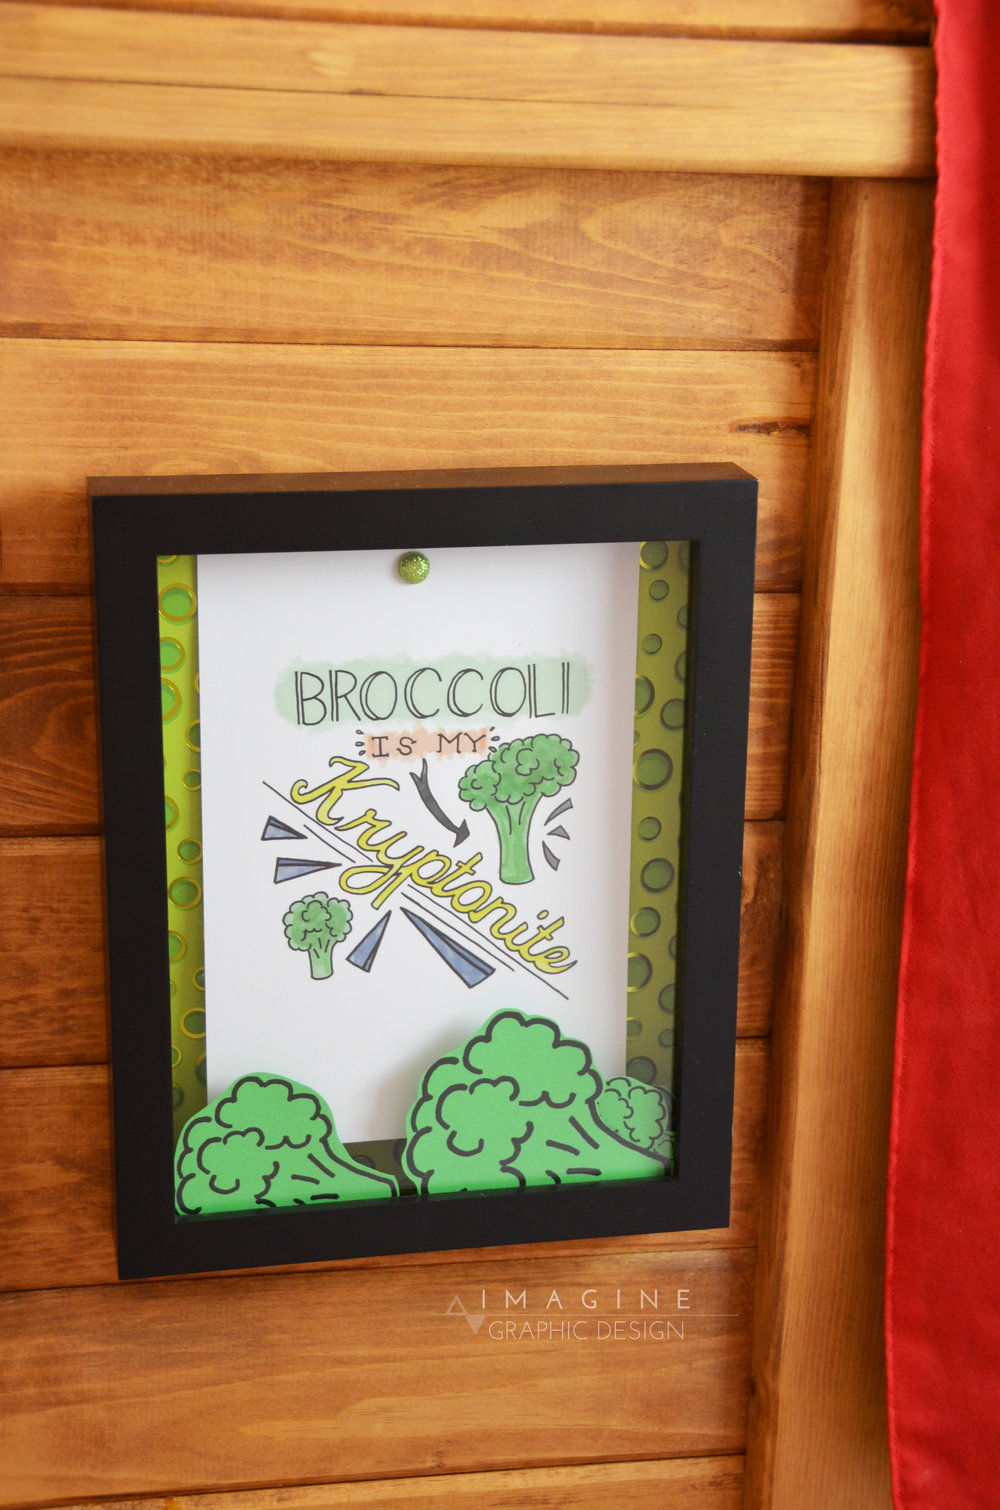 Broccoli Art with WM.jpg